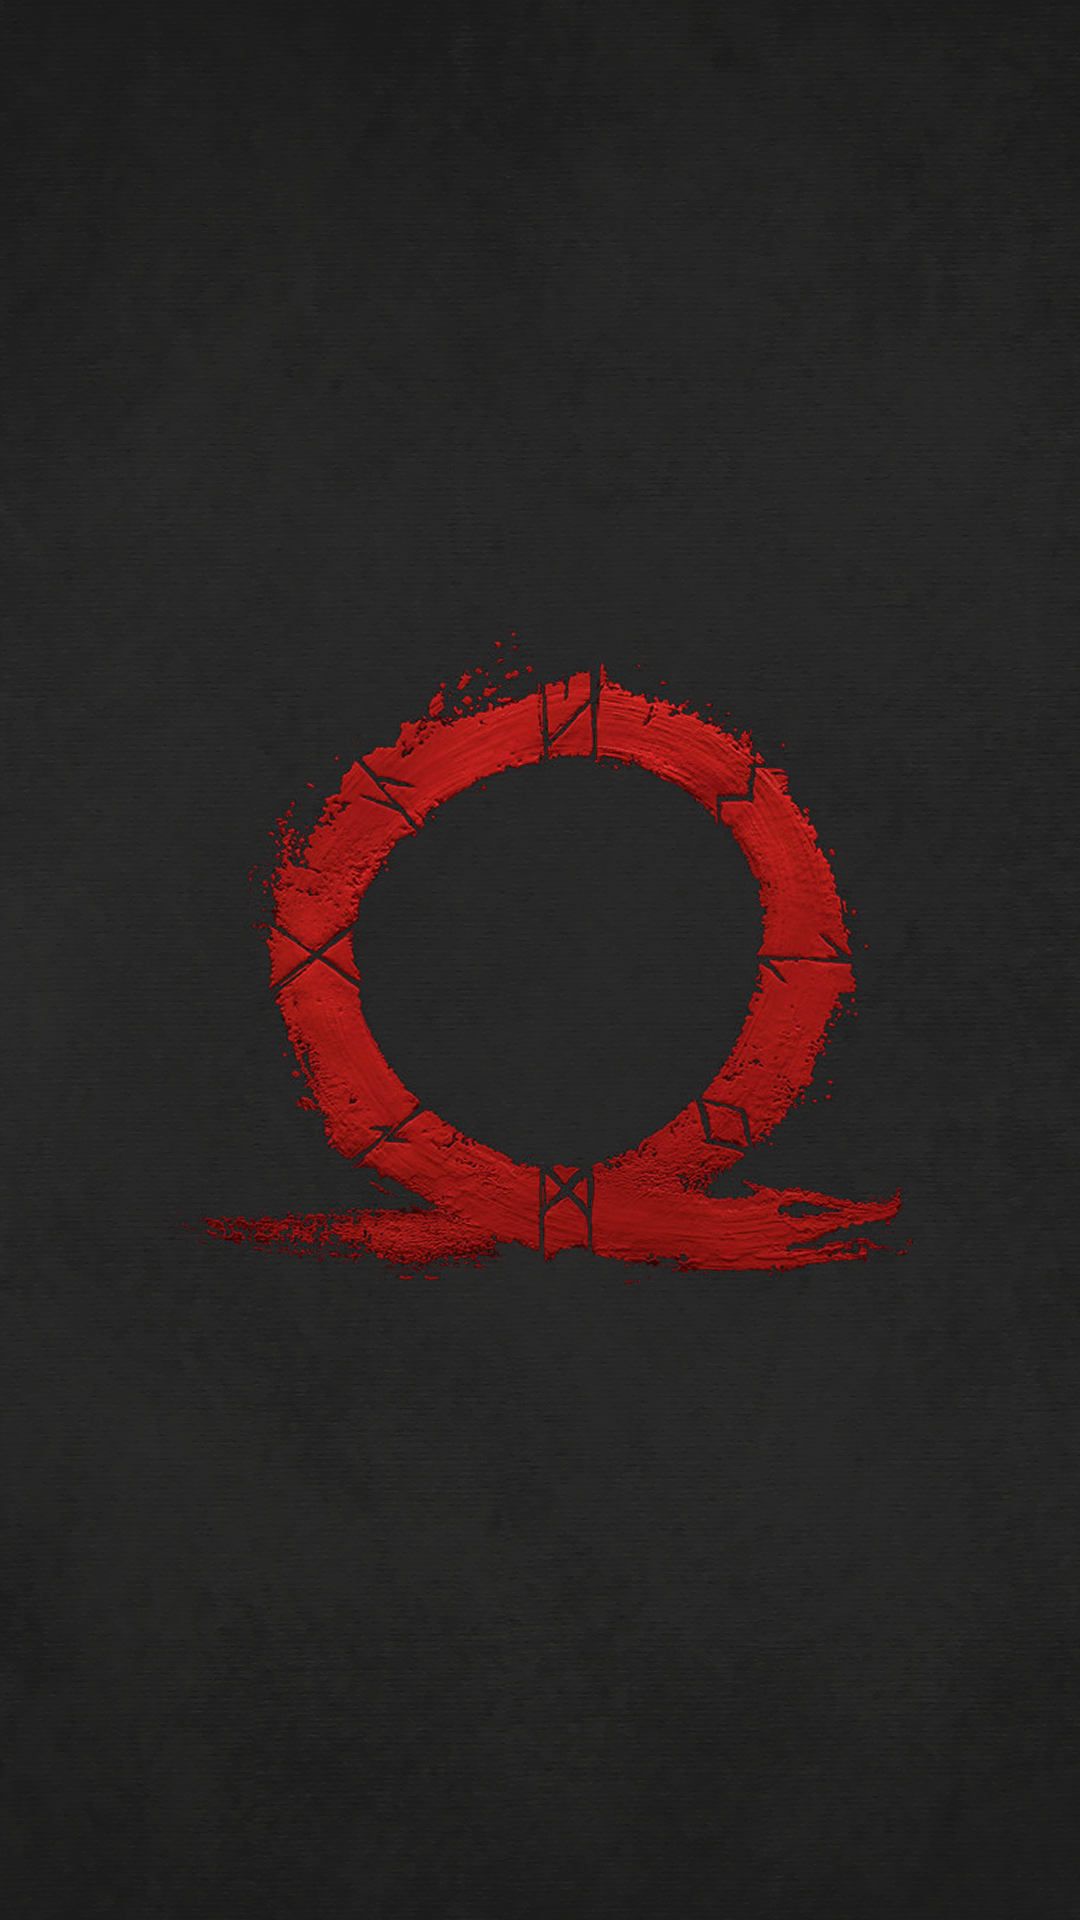 Minimalist Video Game Image Games Wallpapers Ideas Papeis De